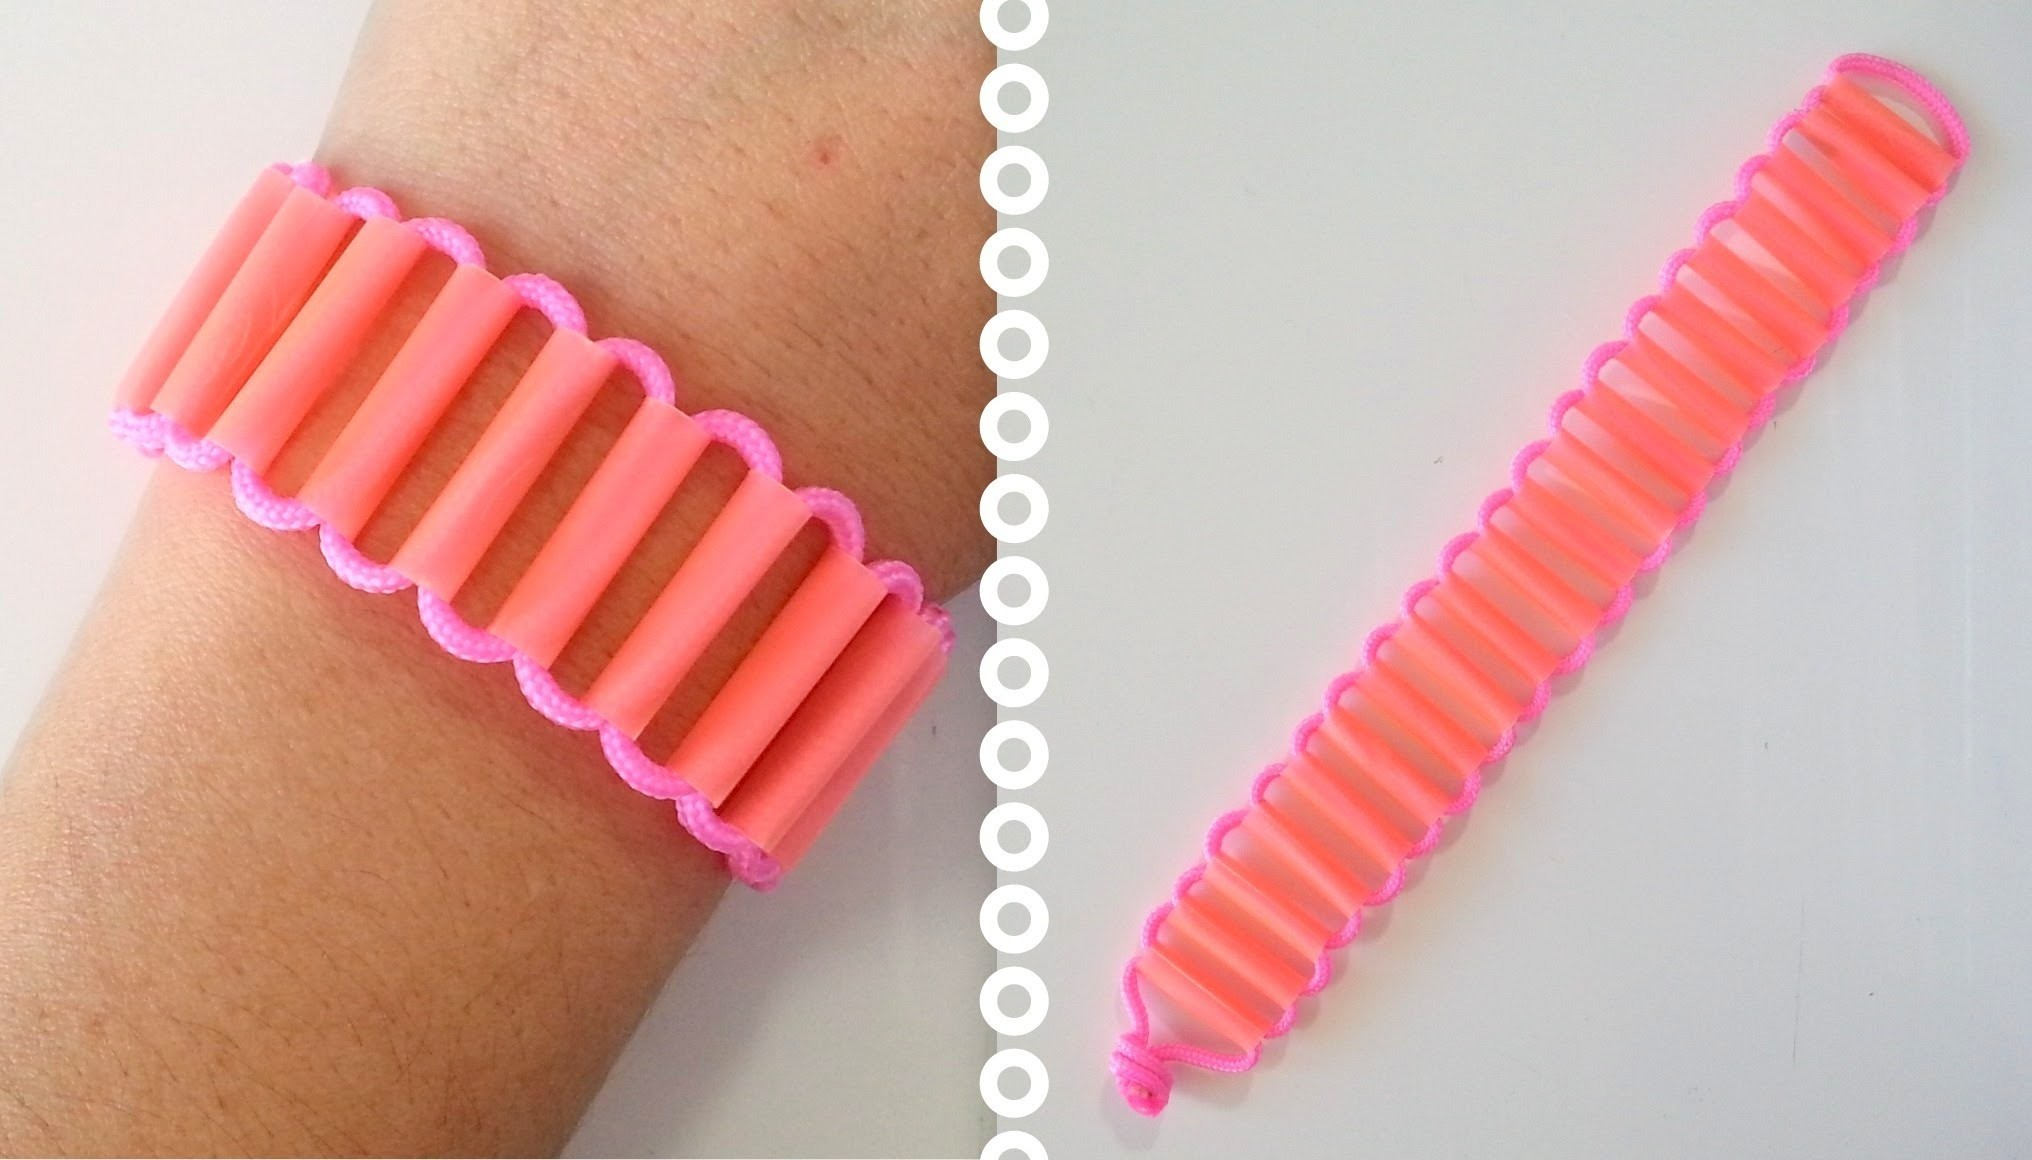 diy comment faire un bracelet avec des pailles paracord cr acord. Black Bedroom Furniture Sets. Home Design Ideas